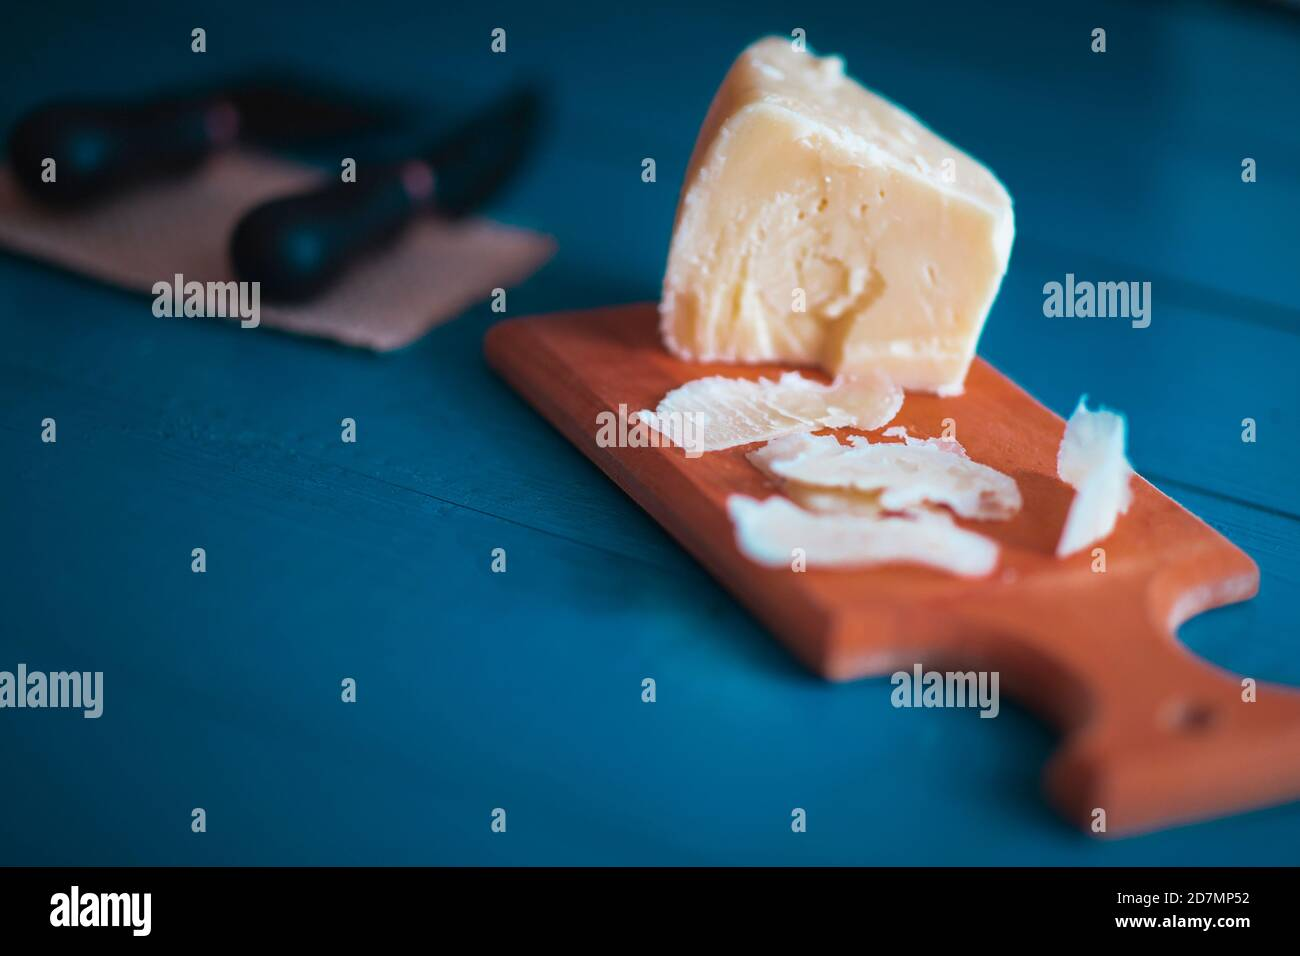 Composed cloesup detail view of aged cheddar cheese with cheese knife set, over vintage blue wooden backdrop, copy space includes Stock Photo